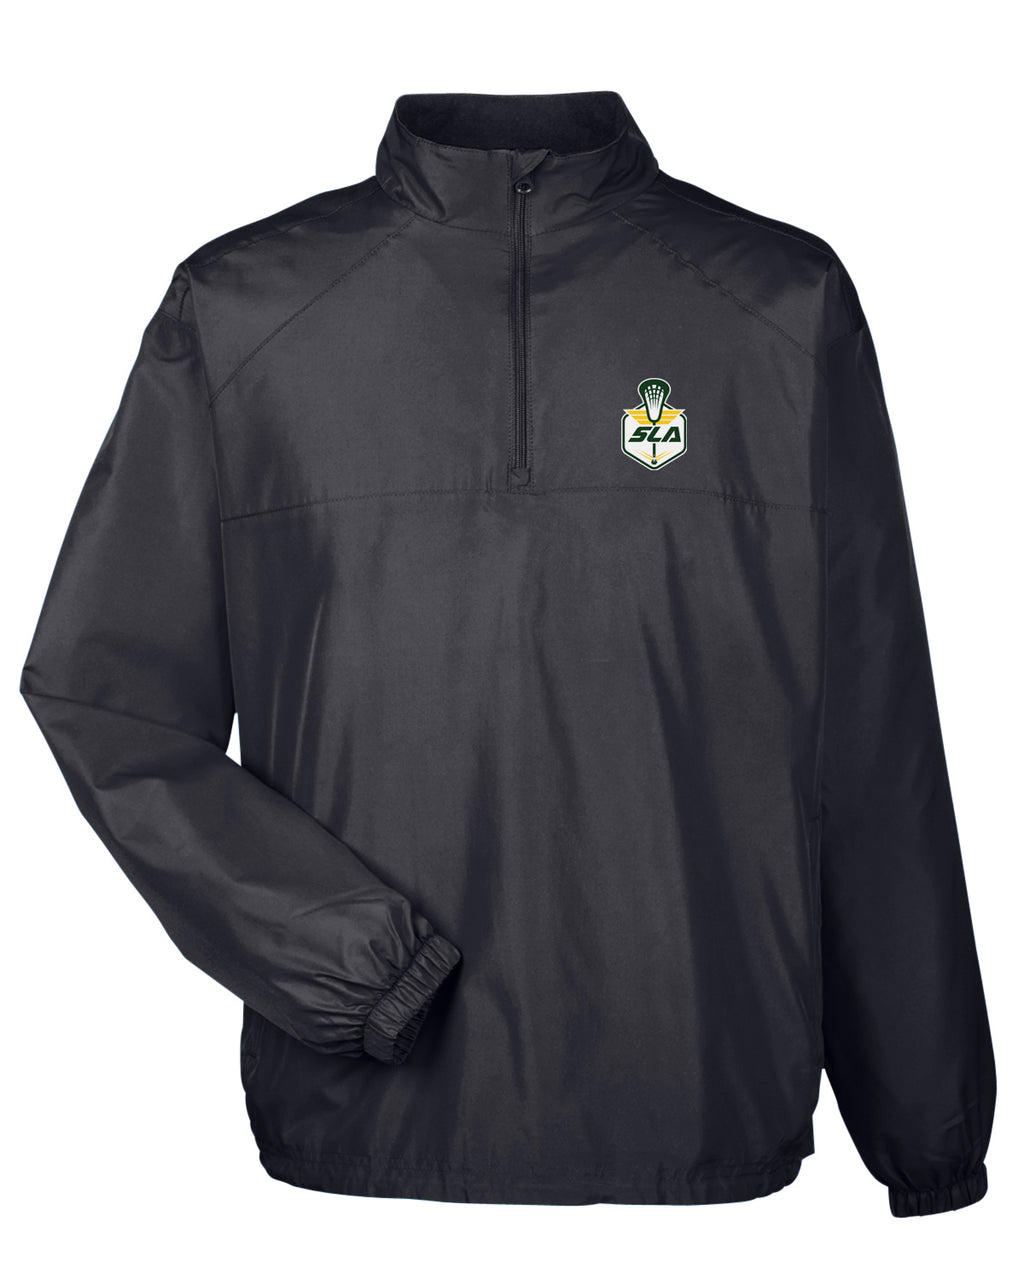 Sycamore Lacrosse Association Black Windbreaker